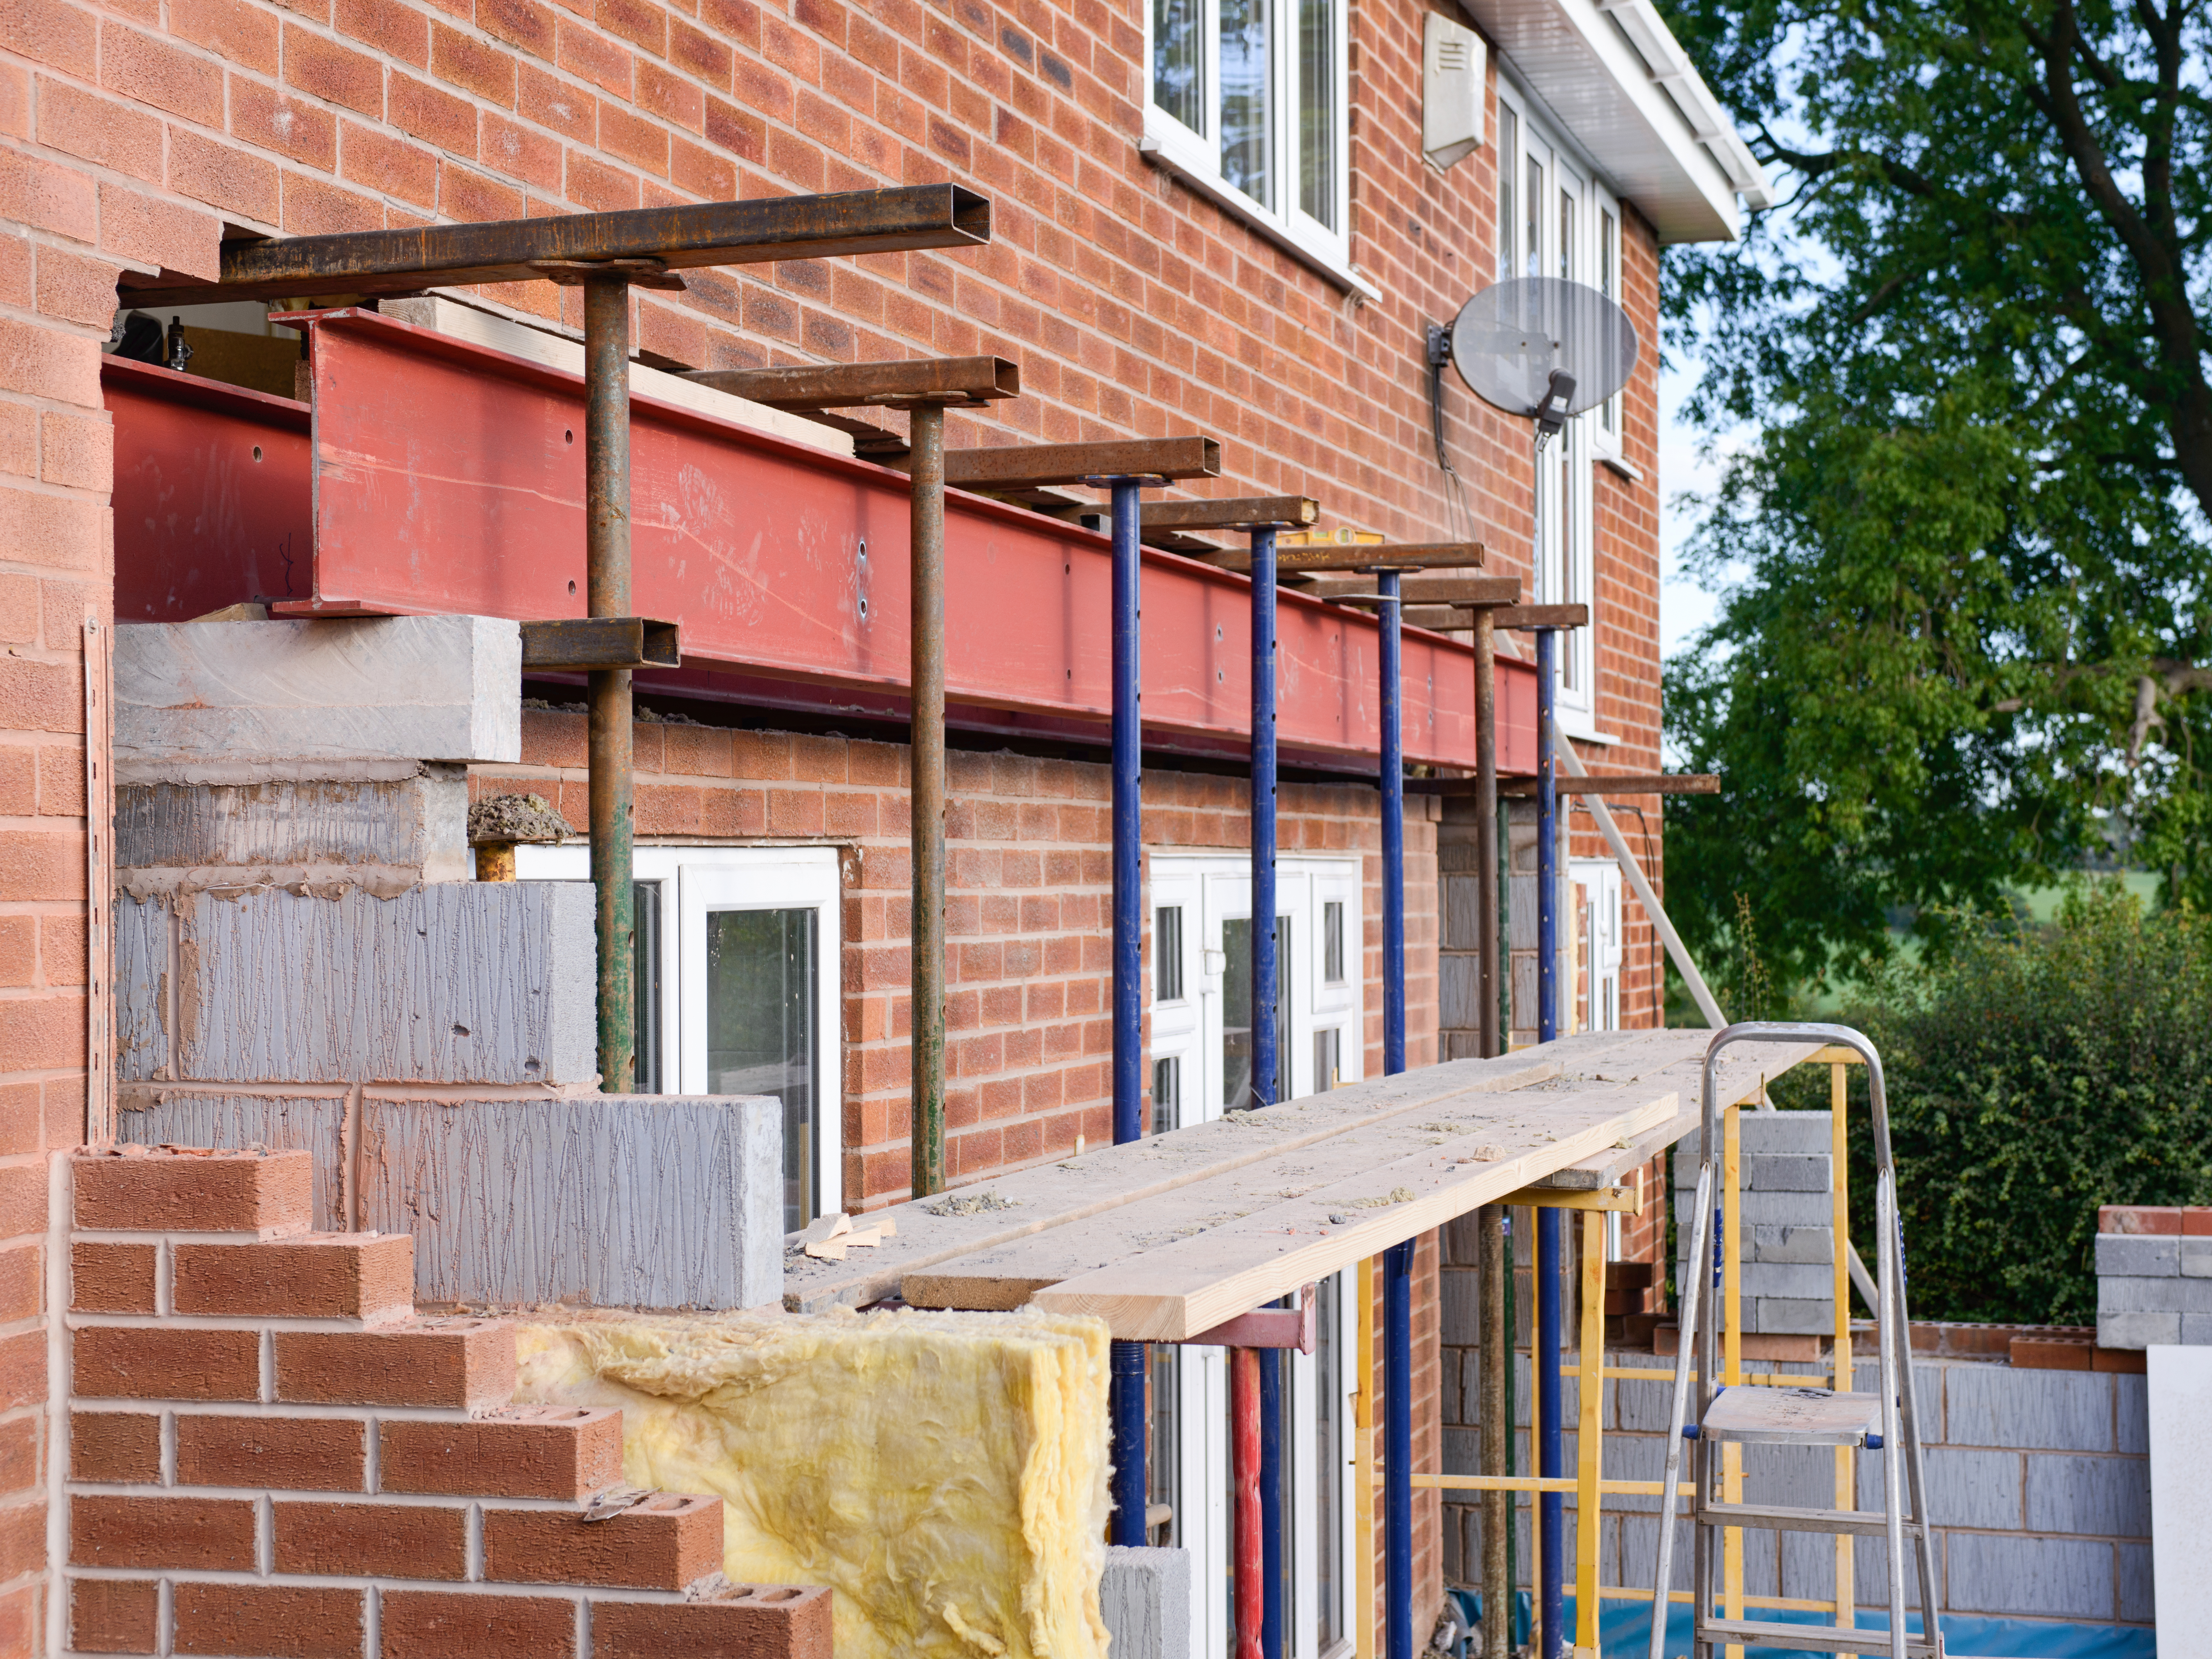 House extensions - are they worth it?